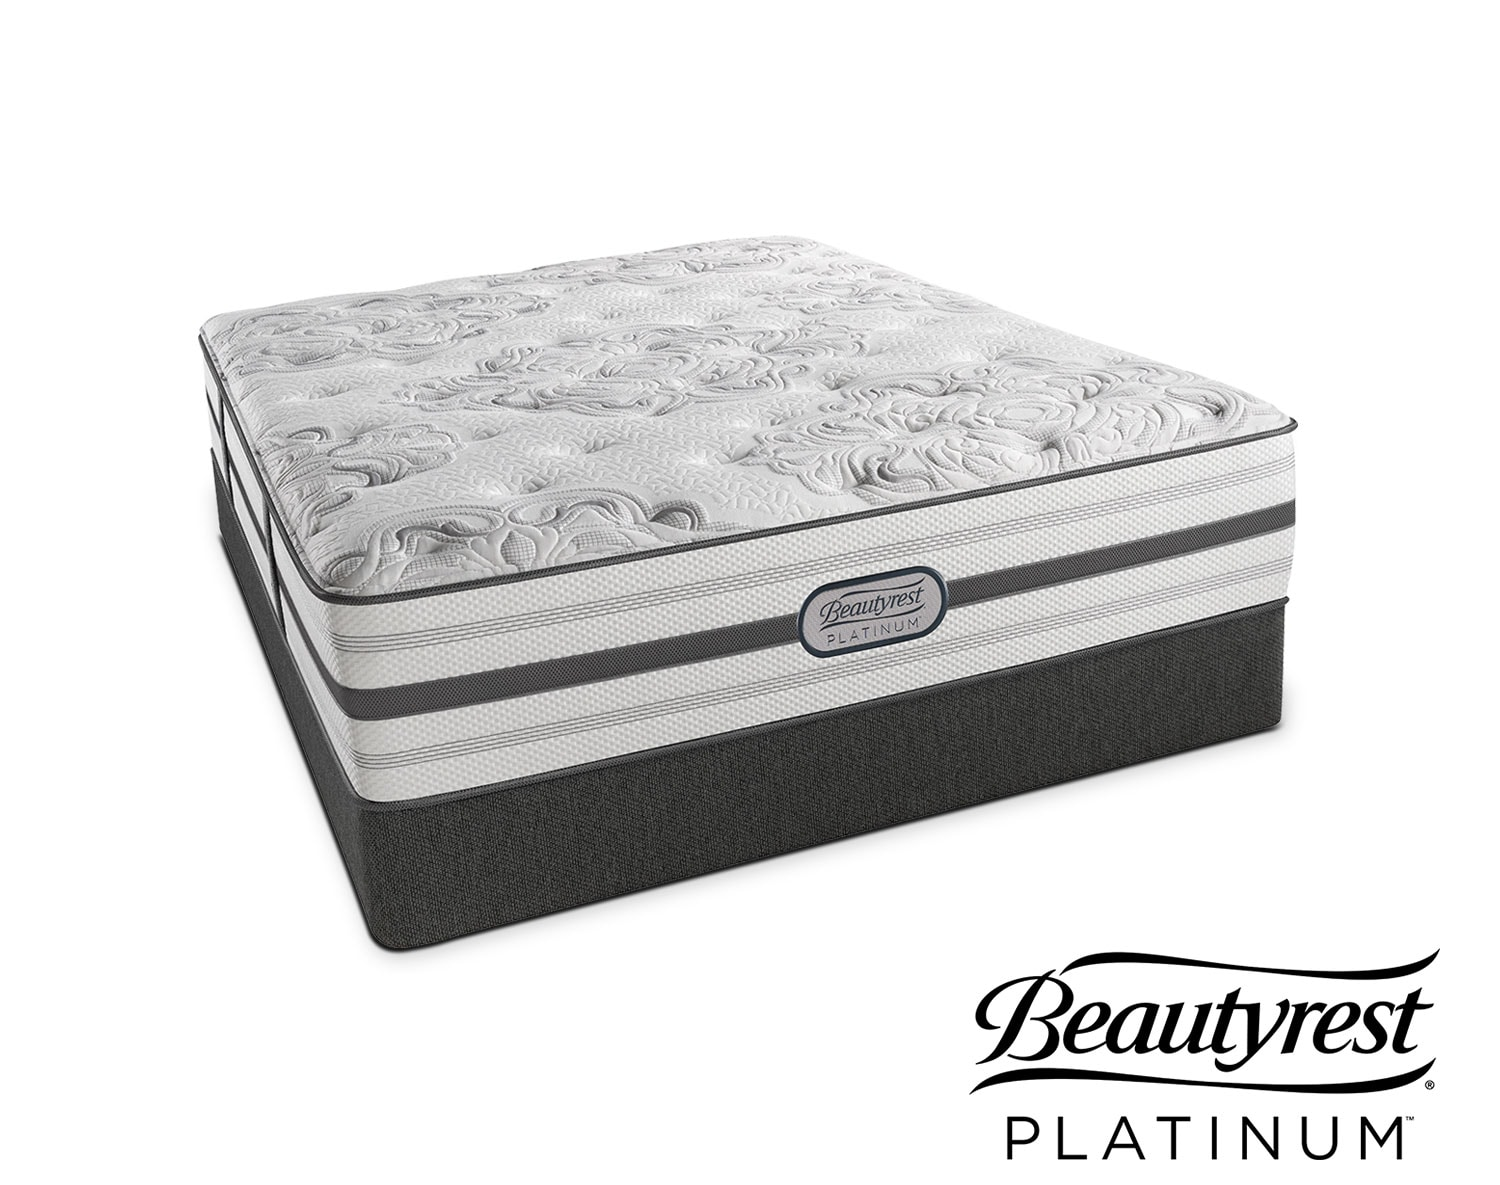 The Alexandria Luxury Firm Mattress Collection